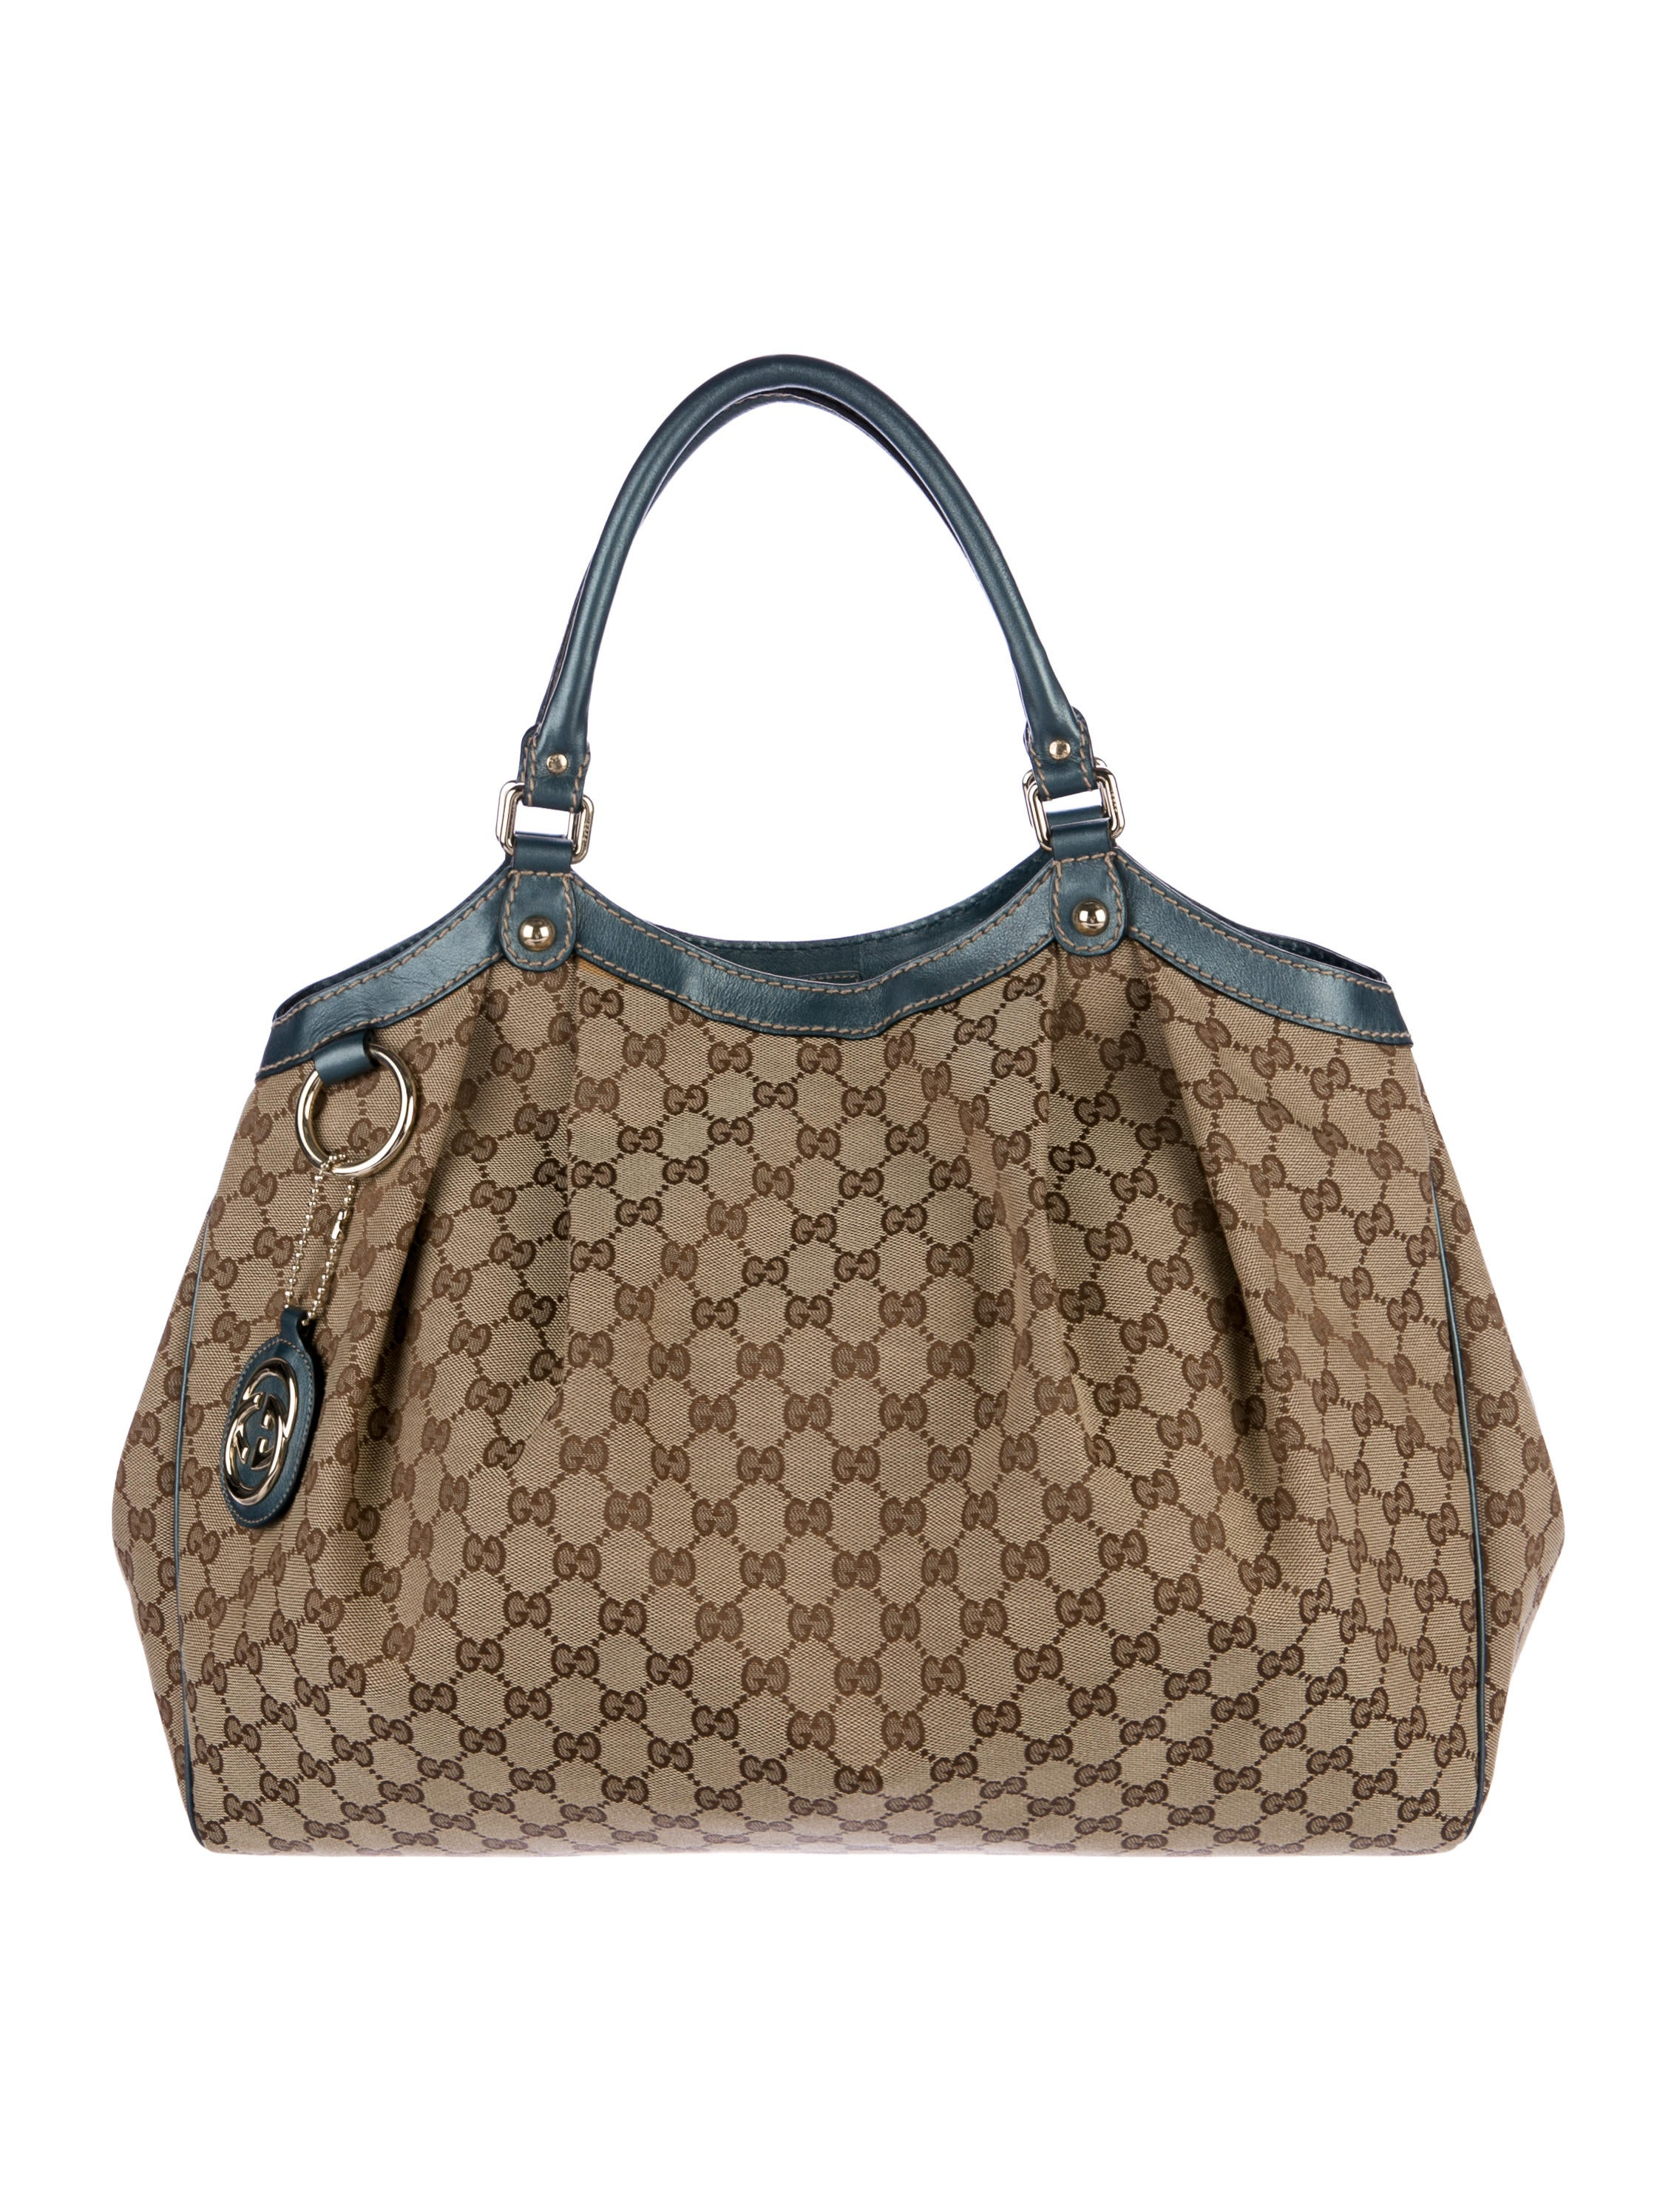 8181e569c4f816 Gucci Sukey Large Tote Bag | Stanford Center for Opportunity Policy ...